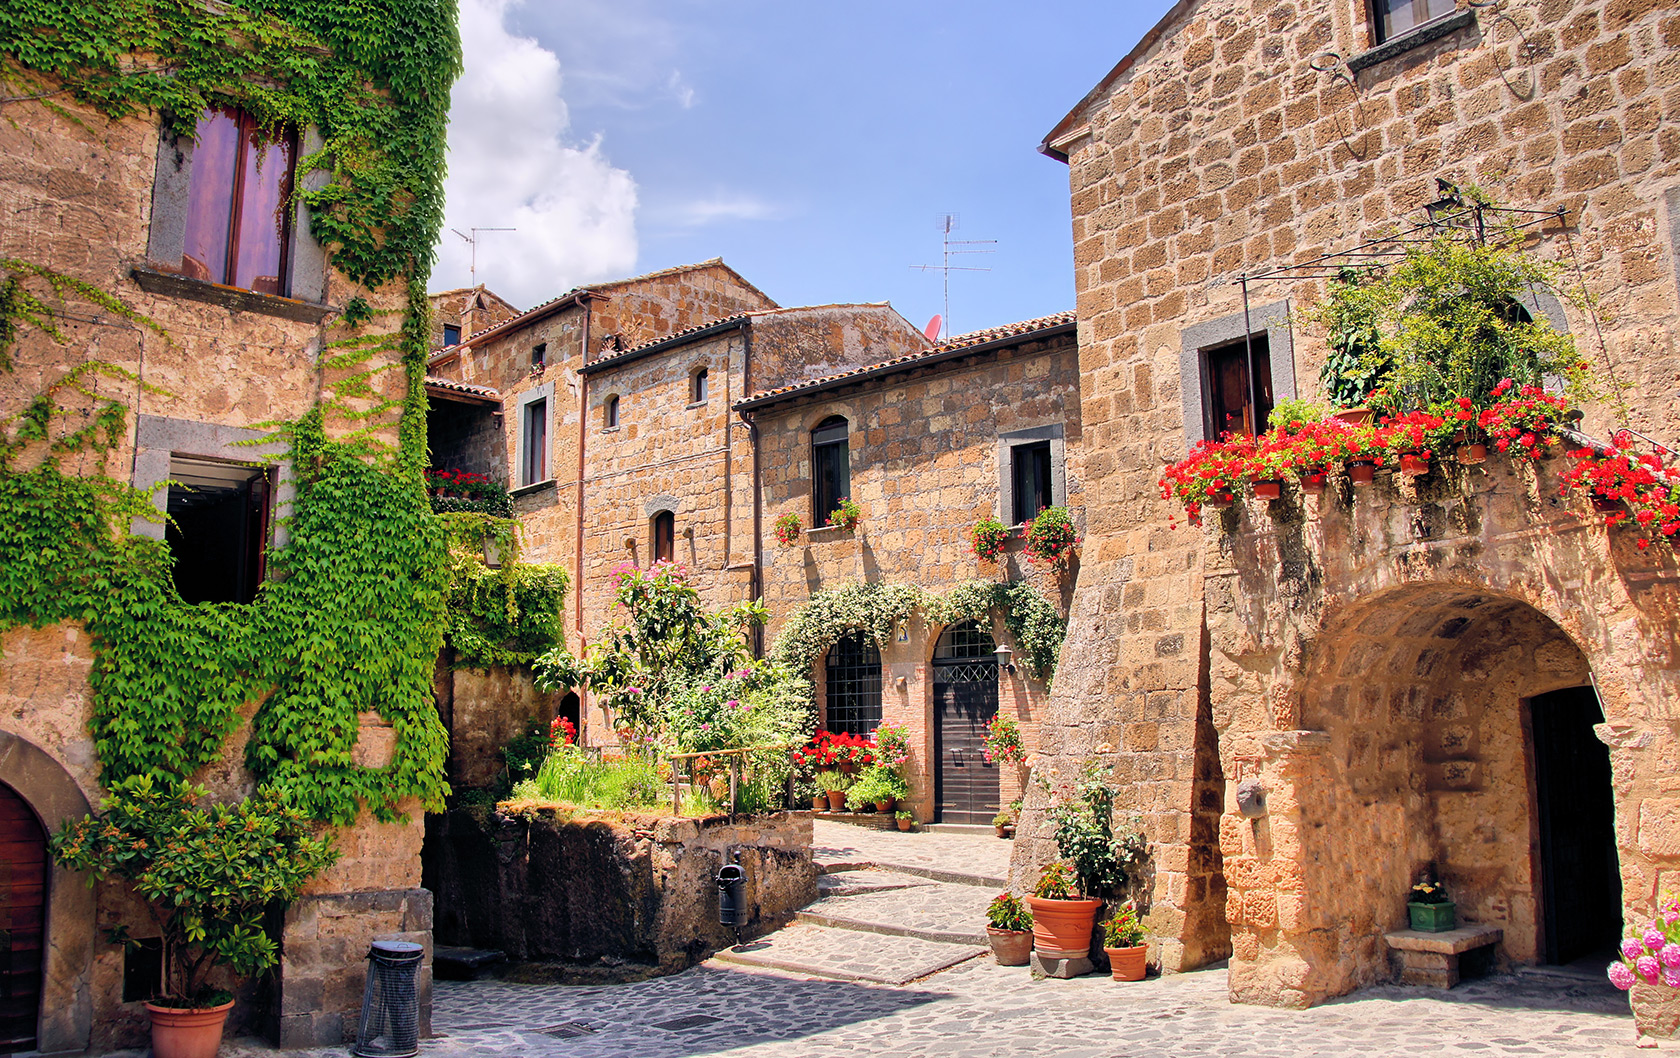 Orvieto, Hill Town Jewel, Easy Day Trip from Rome